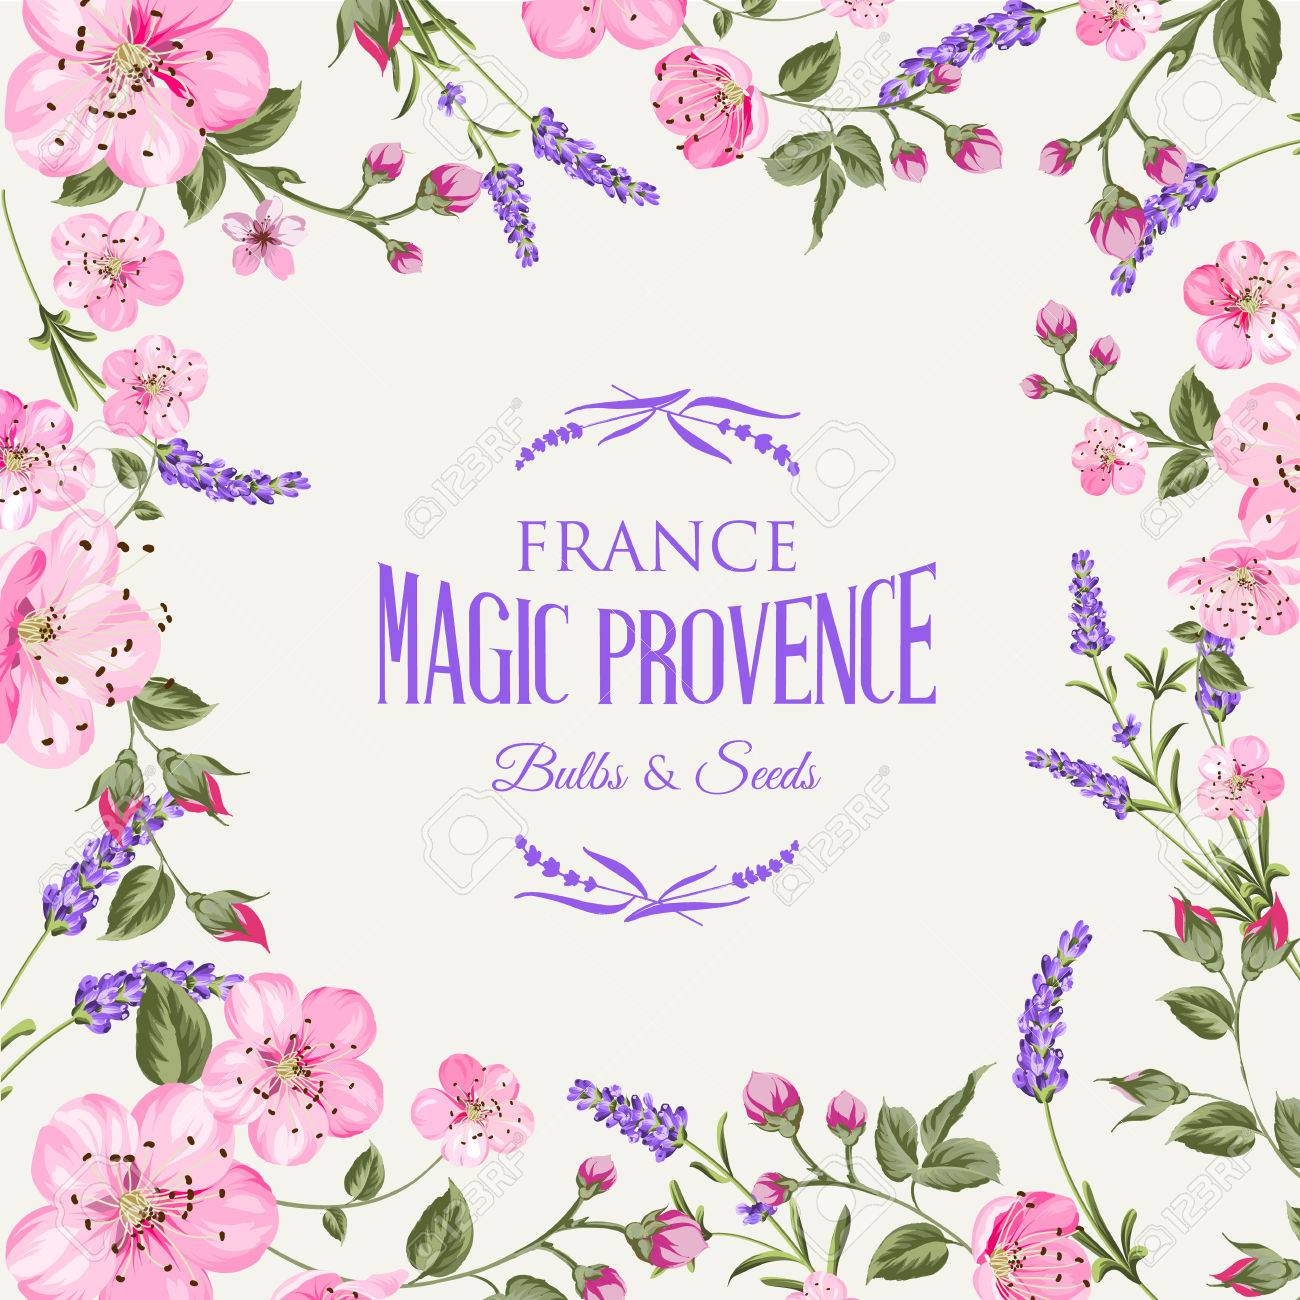 Lavender Provence Memory Card With Frame Of Flowers And Text Flower Garland For Your Text Presentation Sticker With Lavender Flowers Vector